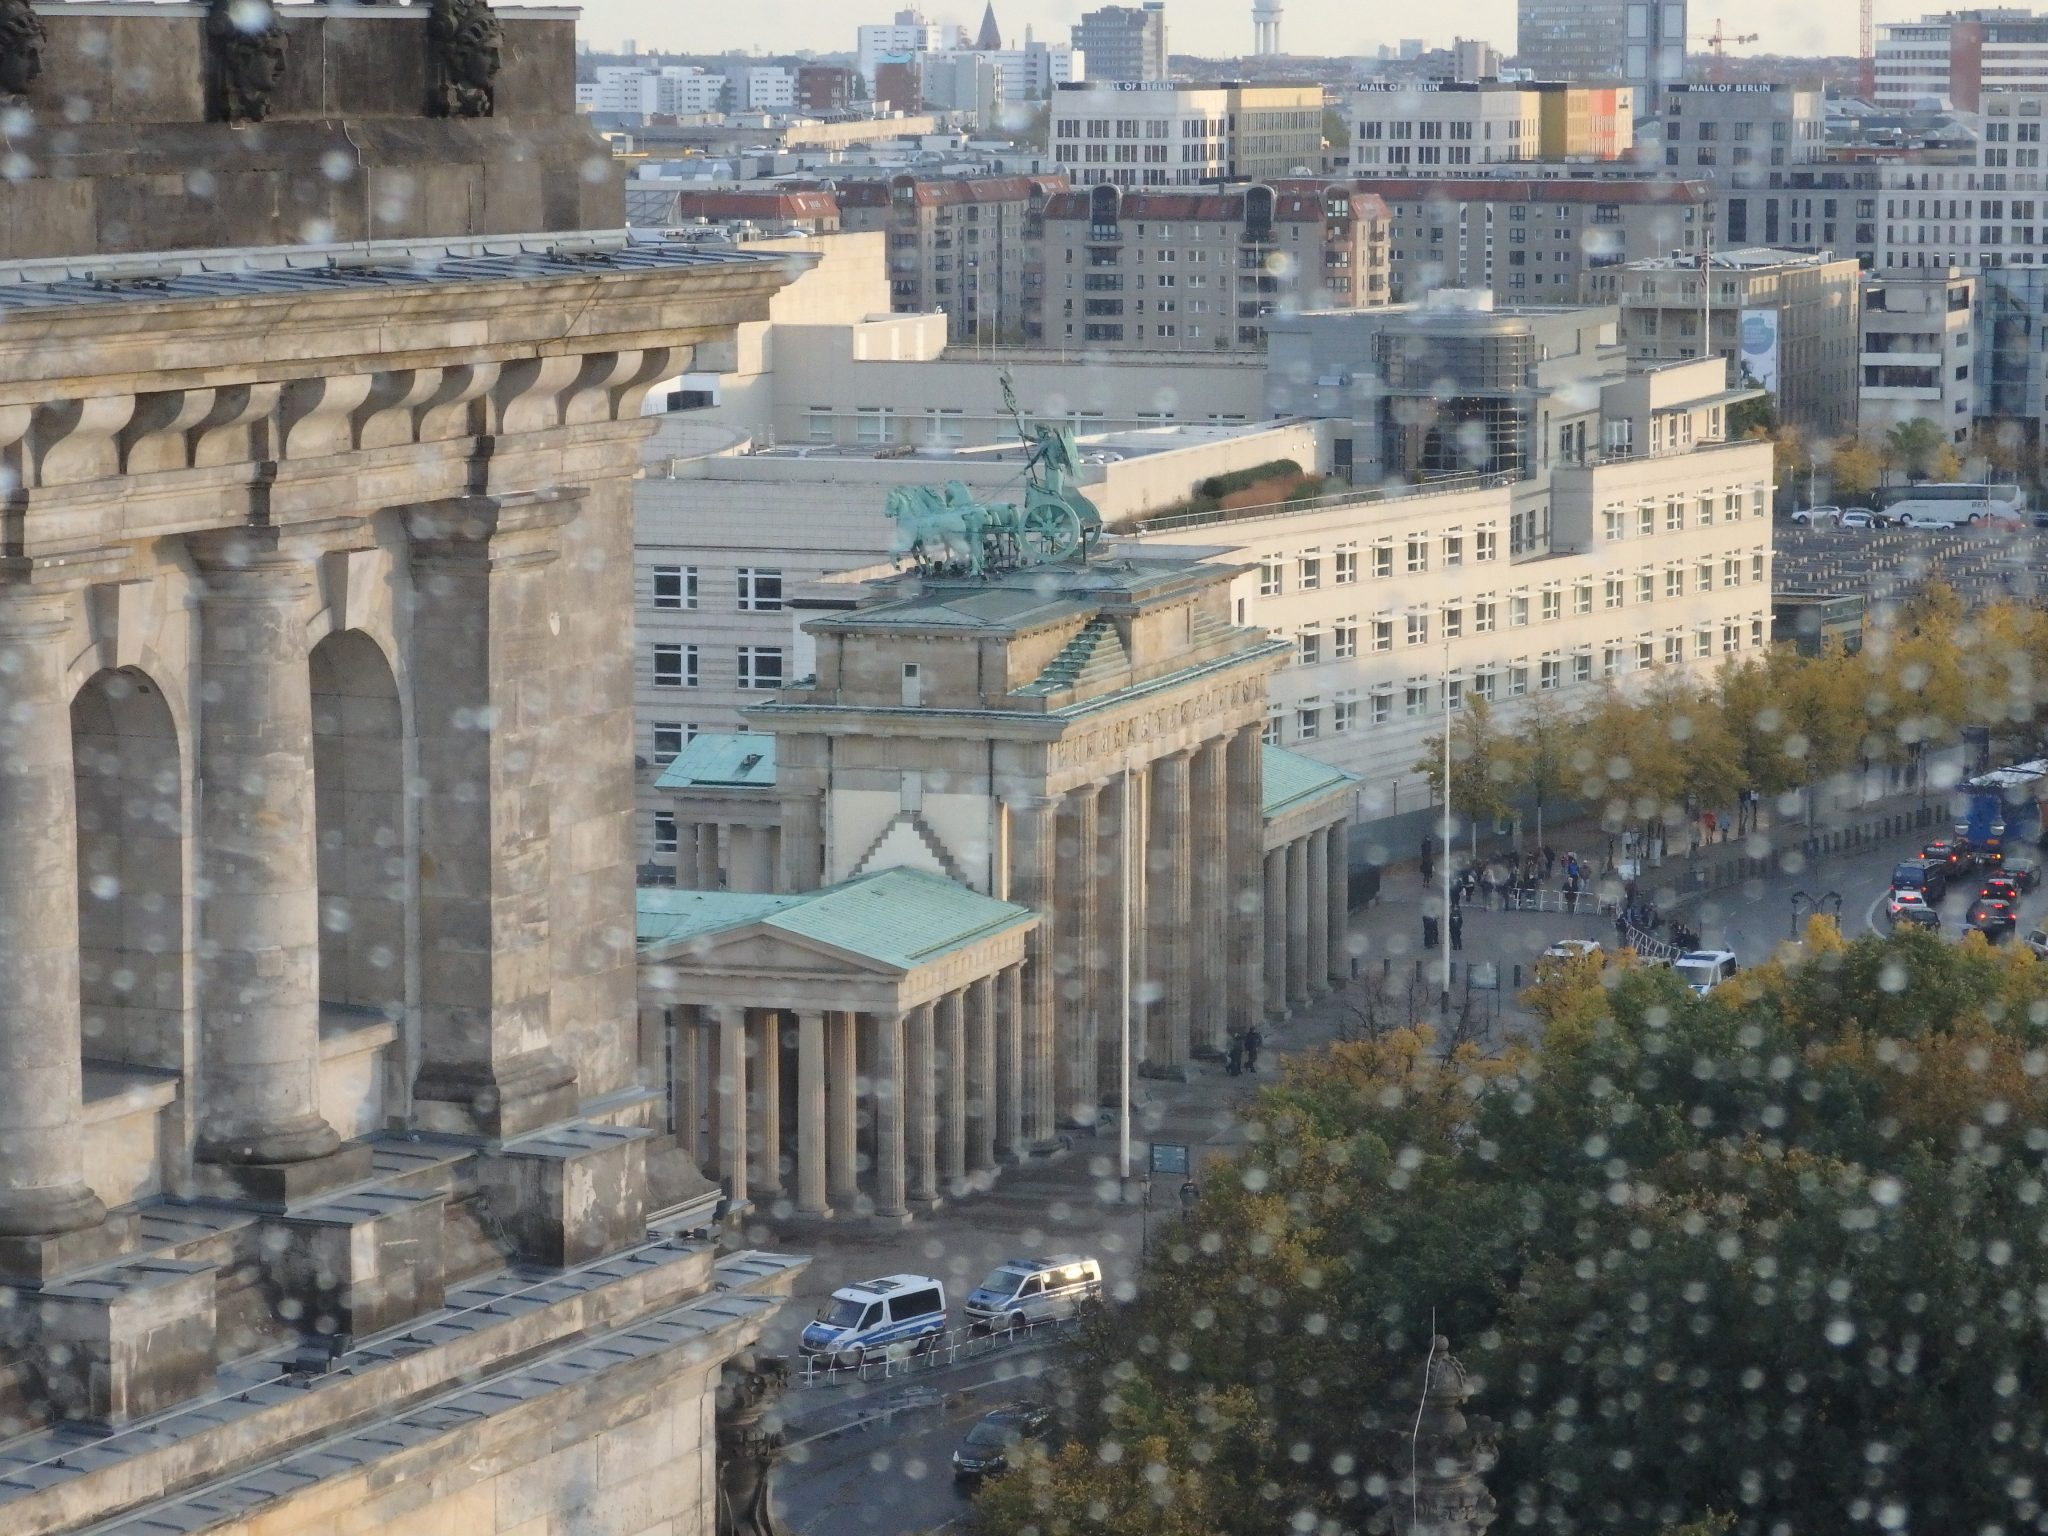 This picture shows the famous Brandenburg Gate. Built in the late 18th century, it was meant to represent peace. During the Cold War it was on East German territory and inaccessible to both East and West Germans. The white building just beyond it is the new US Embassy.